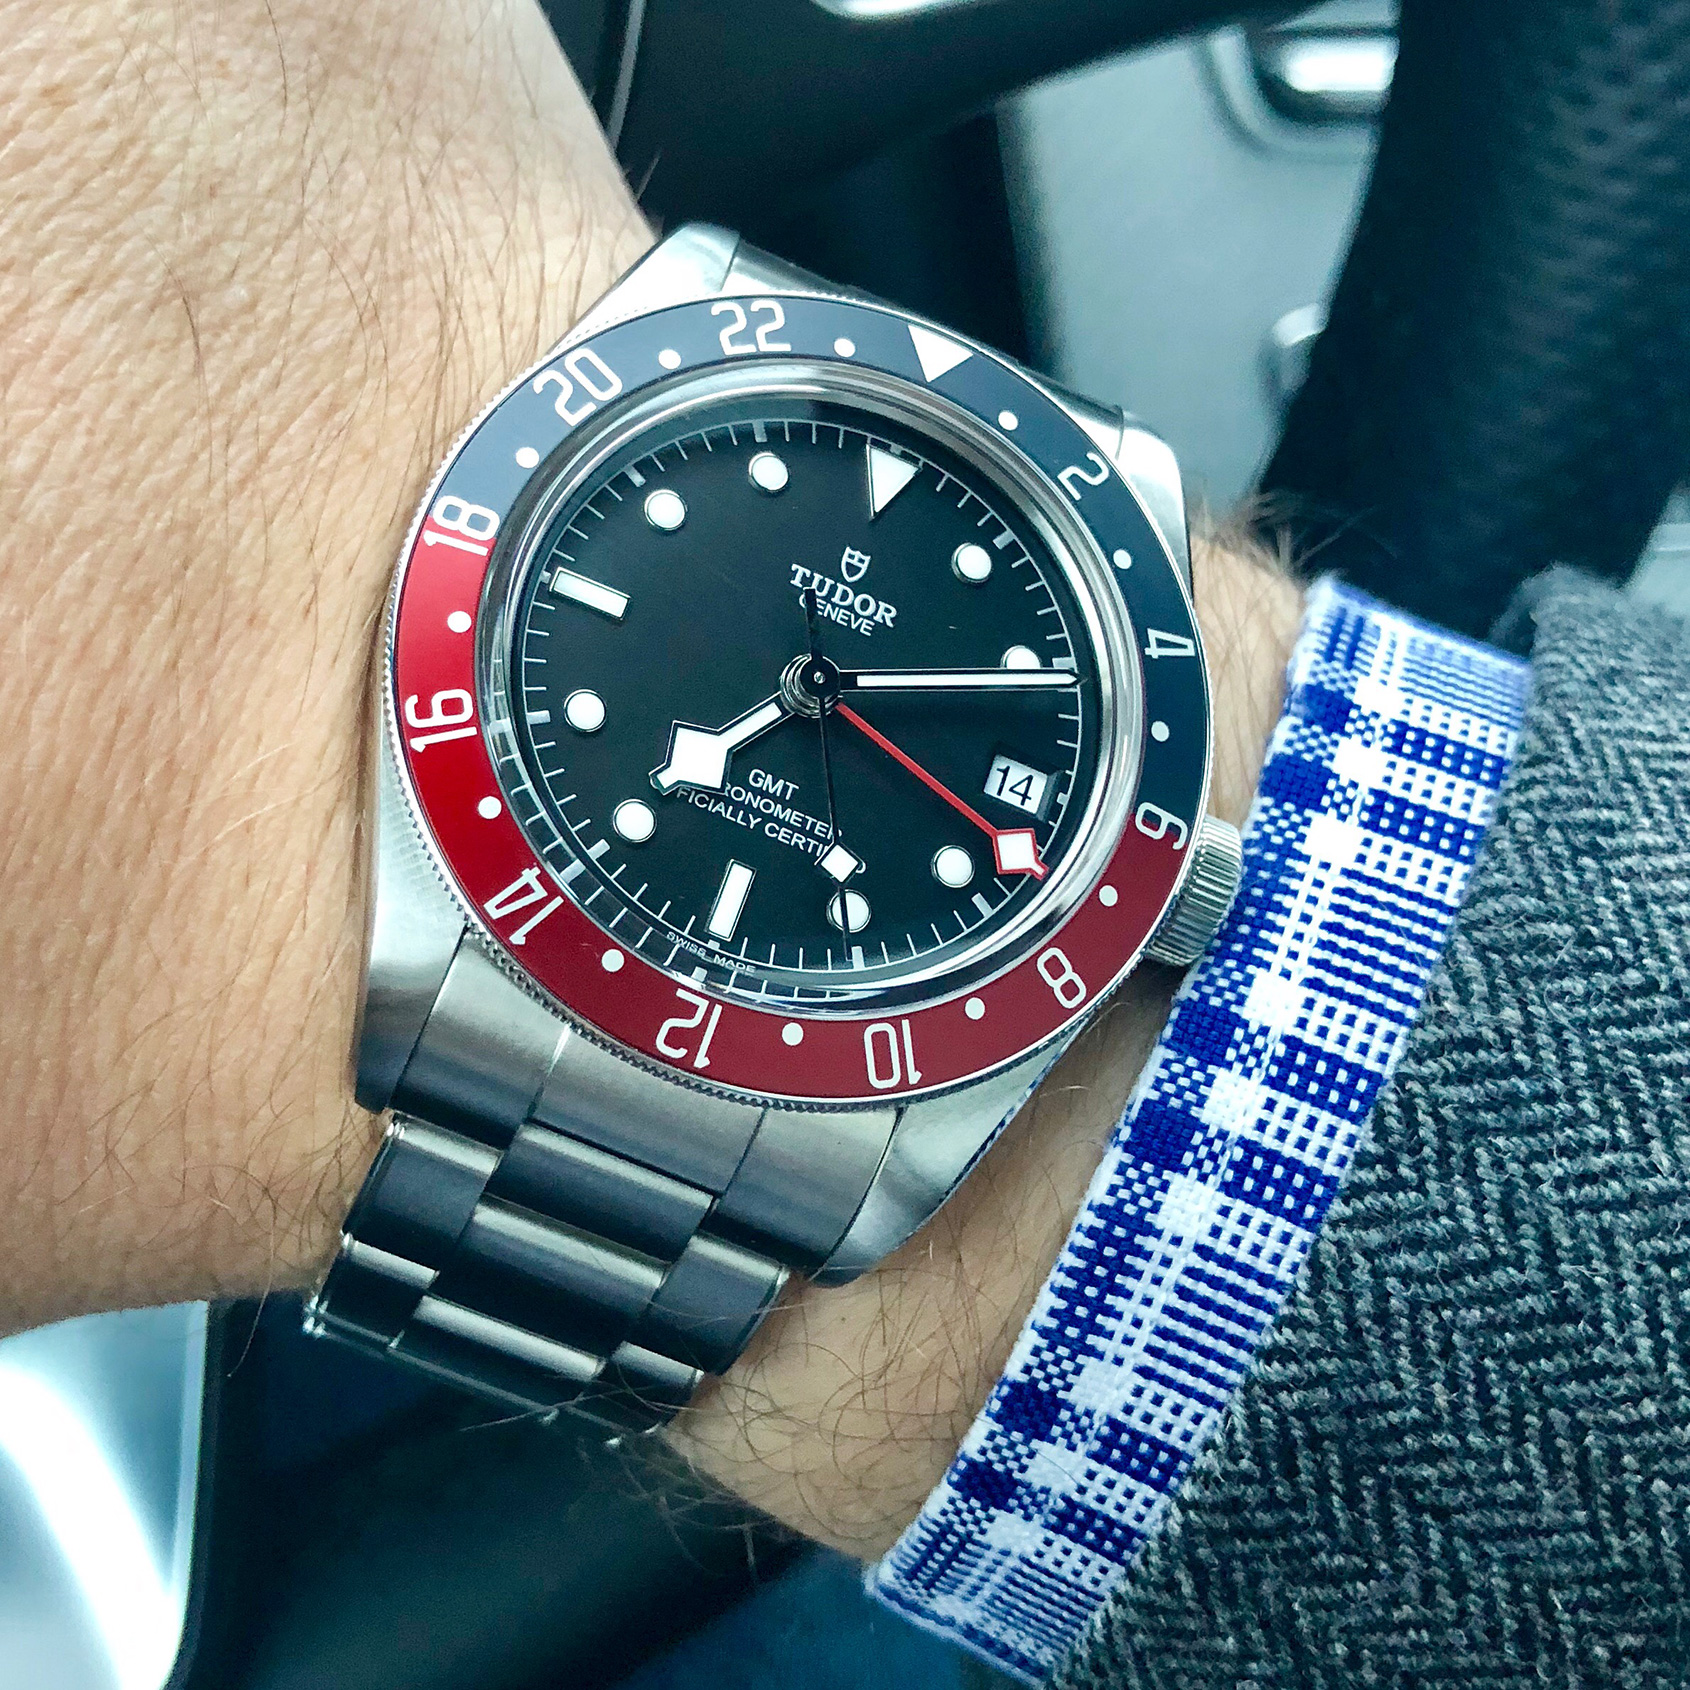 Spending a month with the Tudor Black Bay GMT